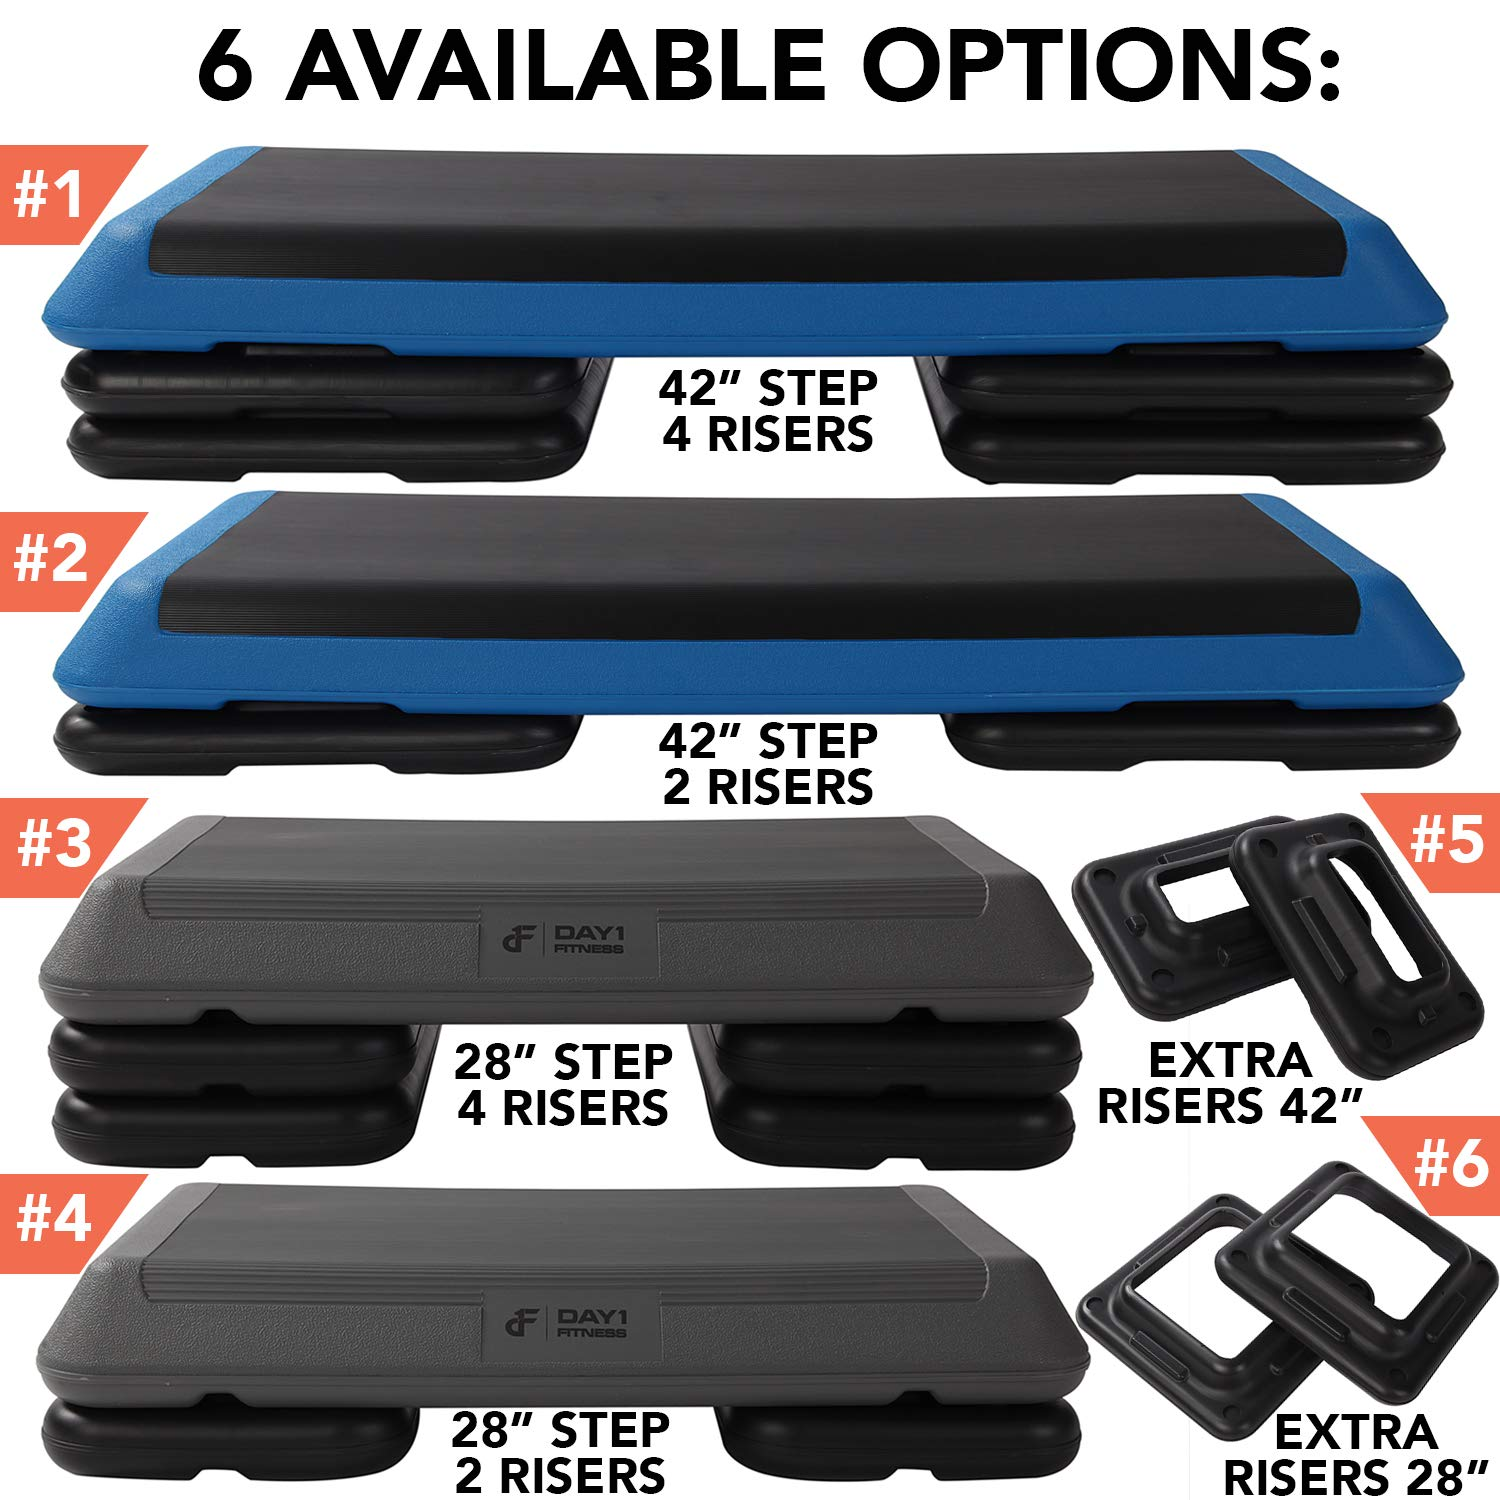 Aerobic Exercise Step Platform by Day 1 Fitness – 6 OPTIONS - 28in CIRCUIT SIZE STEP or 42in HEALTH CLUB SIZE with 2 or 4 RISERS, or ADDITIONAL RISERS - Non-Slip and Shock Absorbing Surface